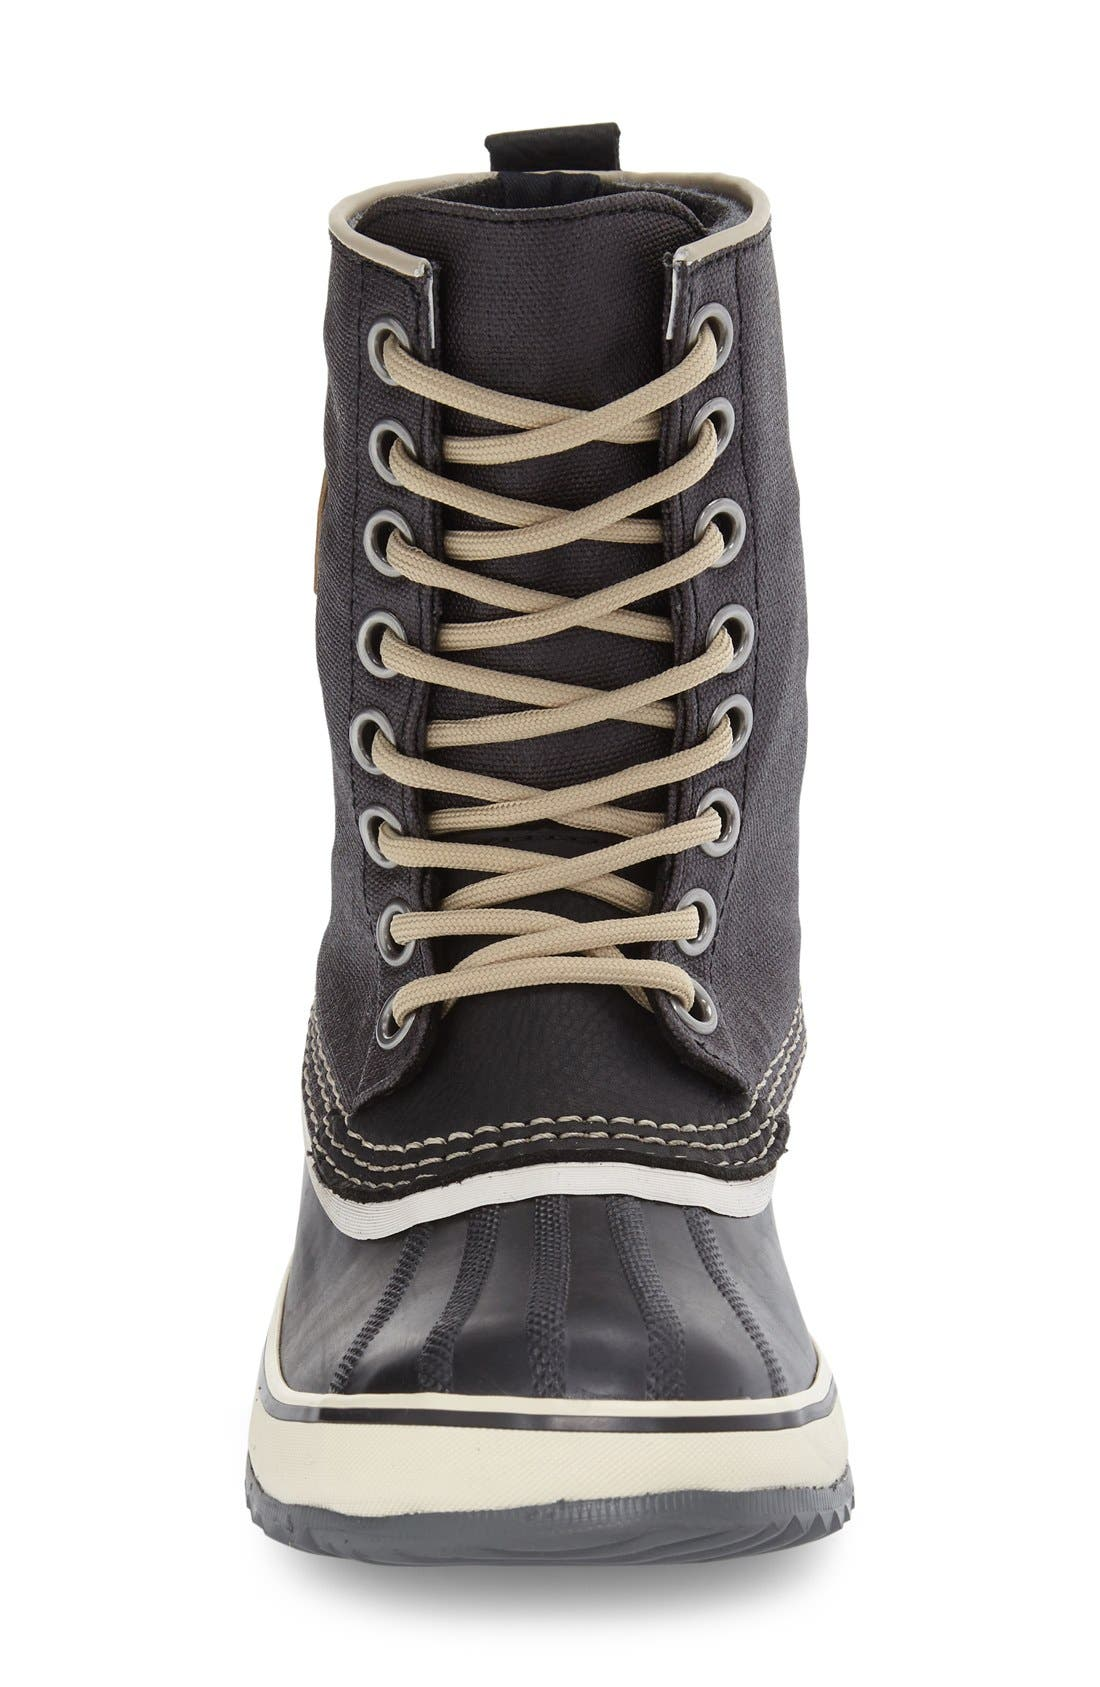 '1964 Premium' Waterproof Boot,                             Alternate thumbnail 4, color,                             BLACK/ FOSSIL